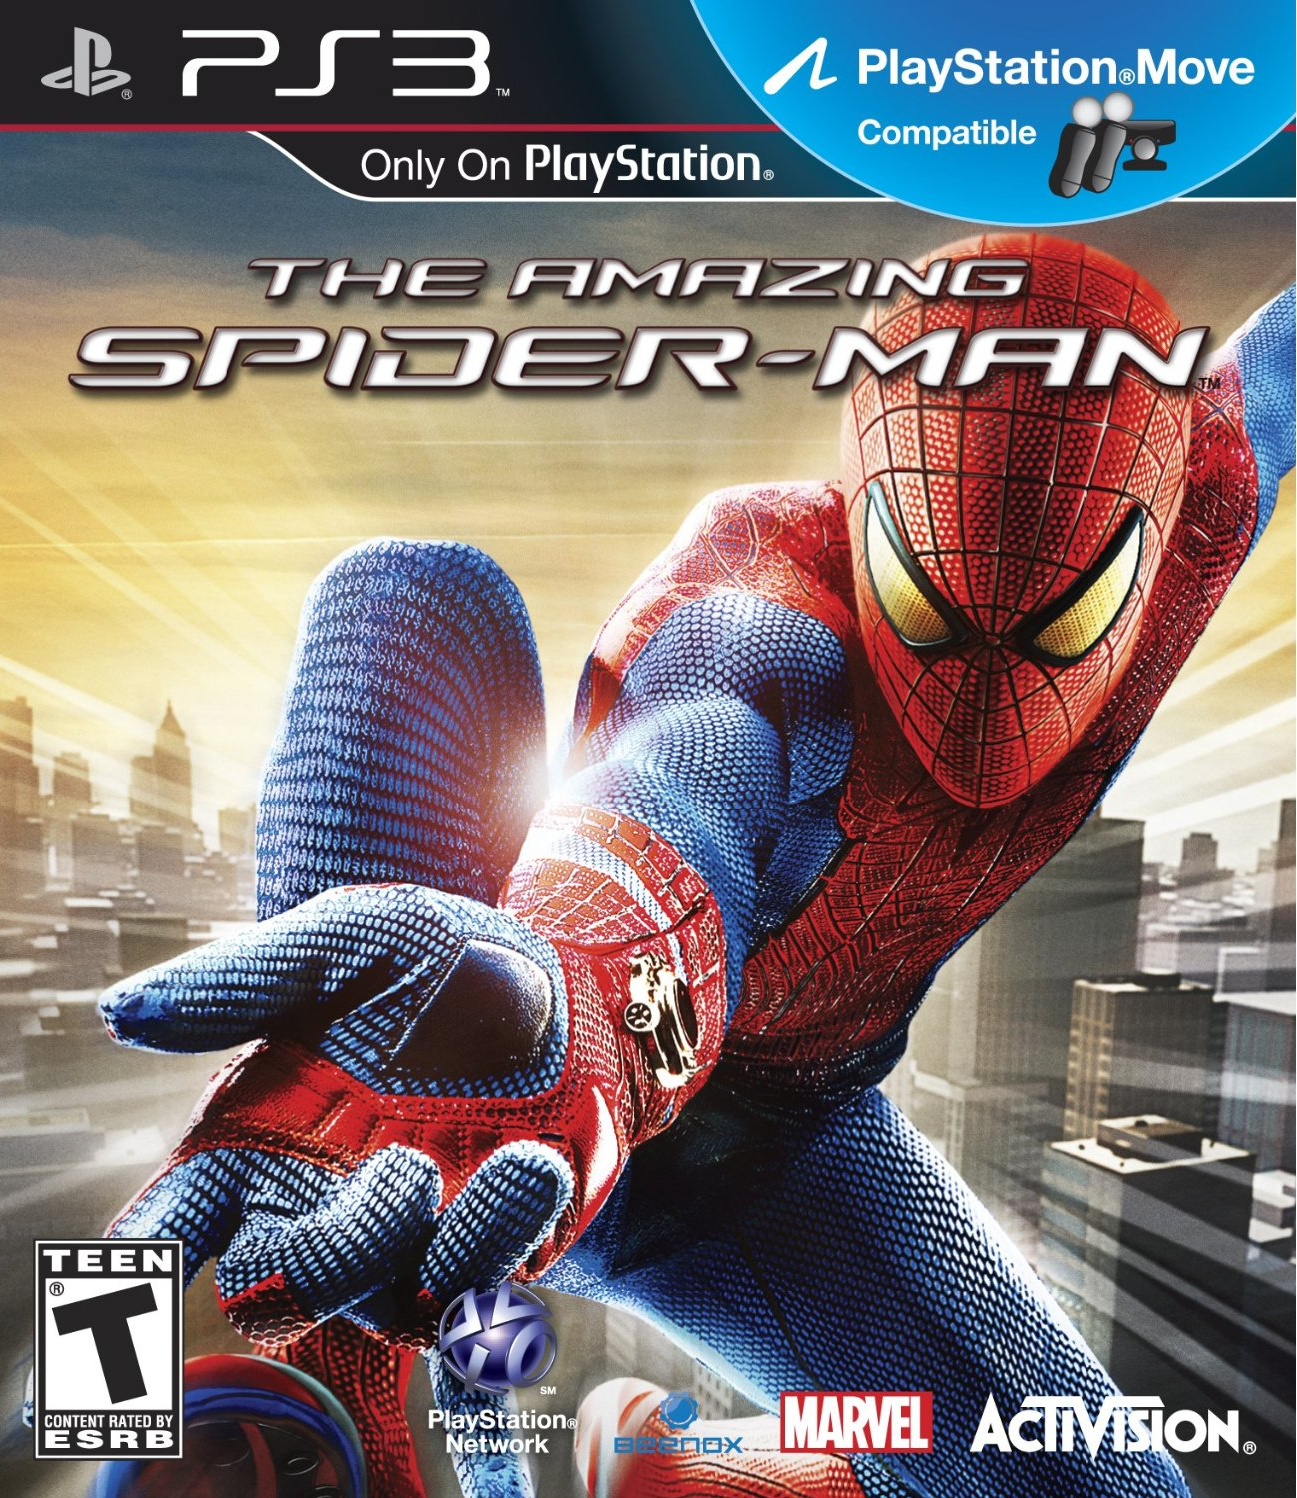 image - the amazing spider-man - ps3 game 1 | amazing spider-man